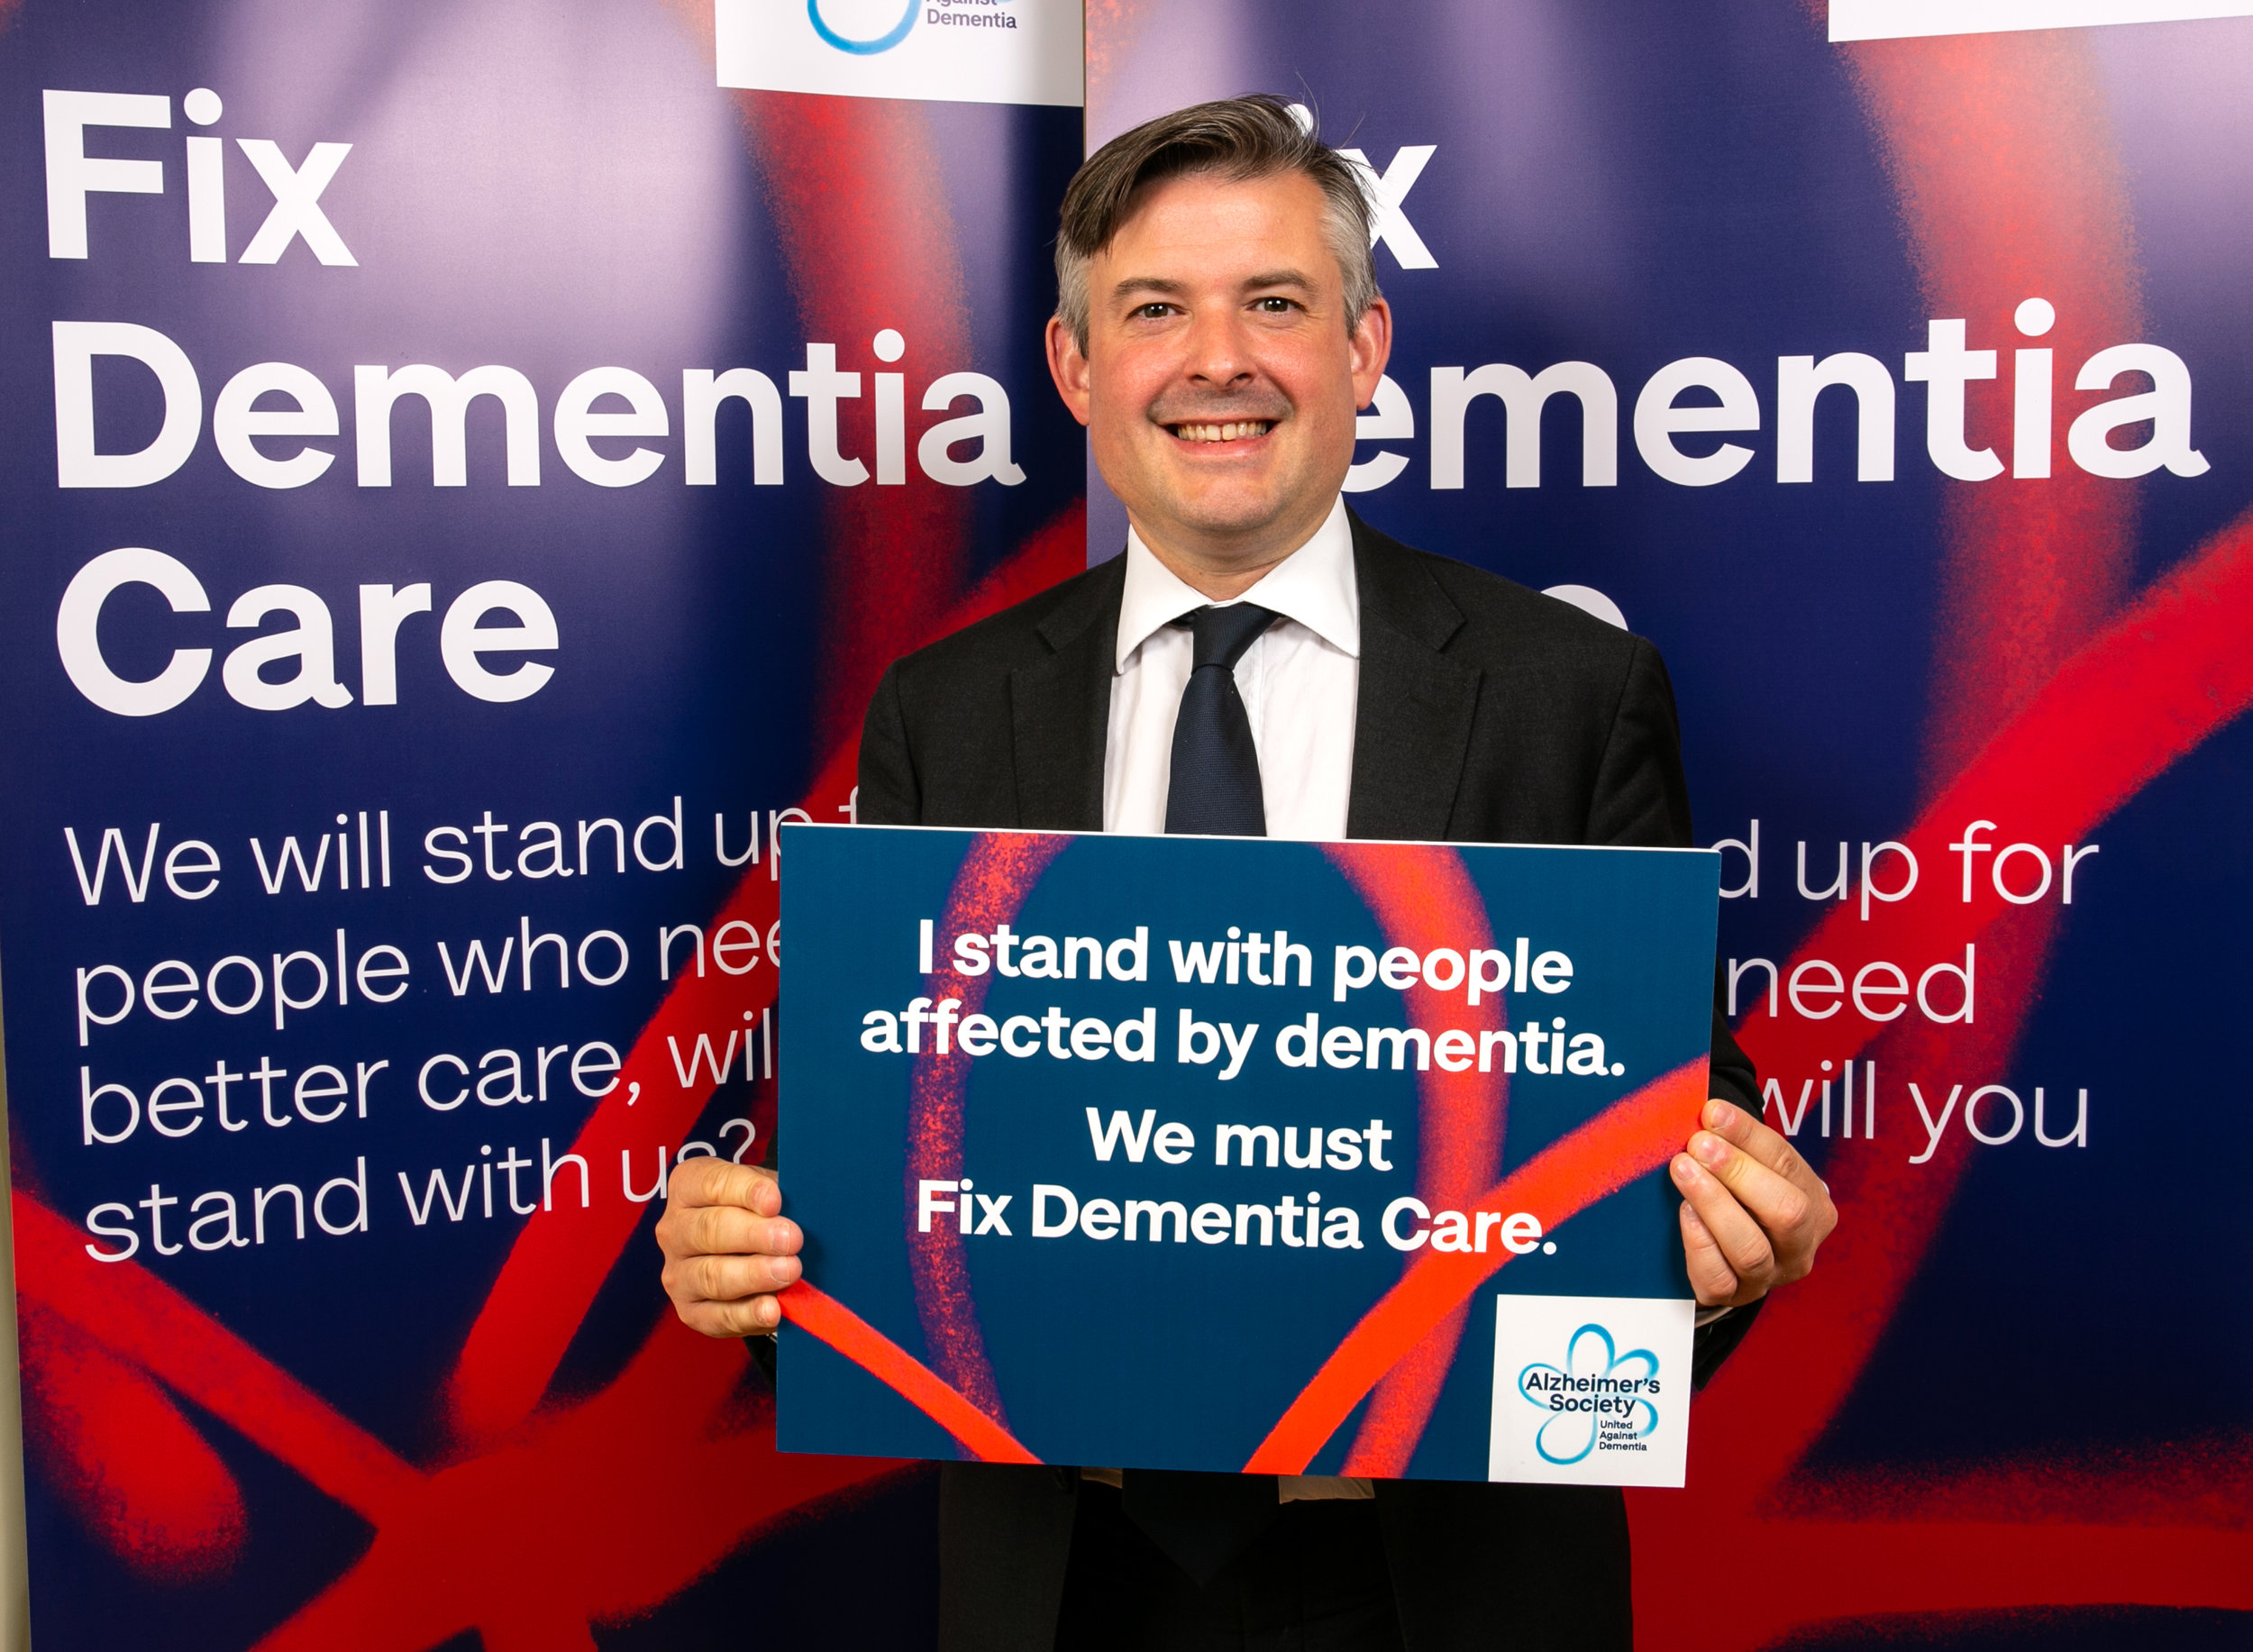 Jon speaks out in support of Alzheimer's Society dementia care campaign - Tuesday July 9 2019